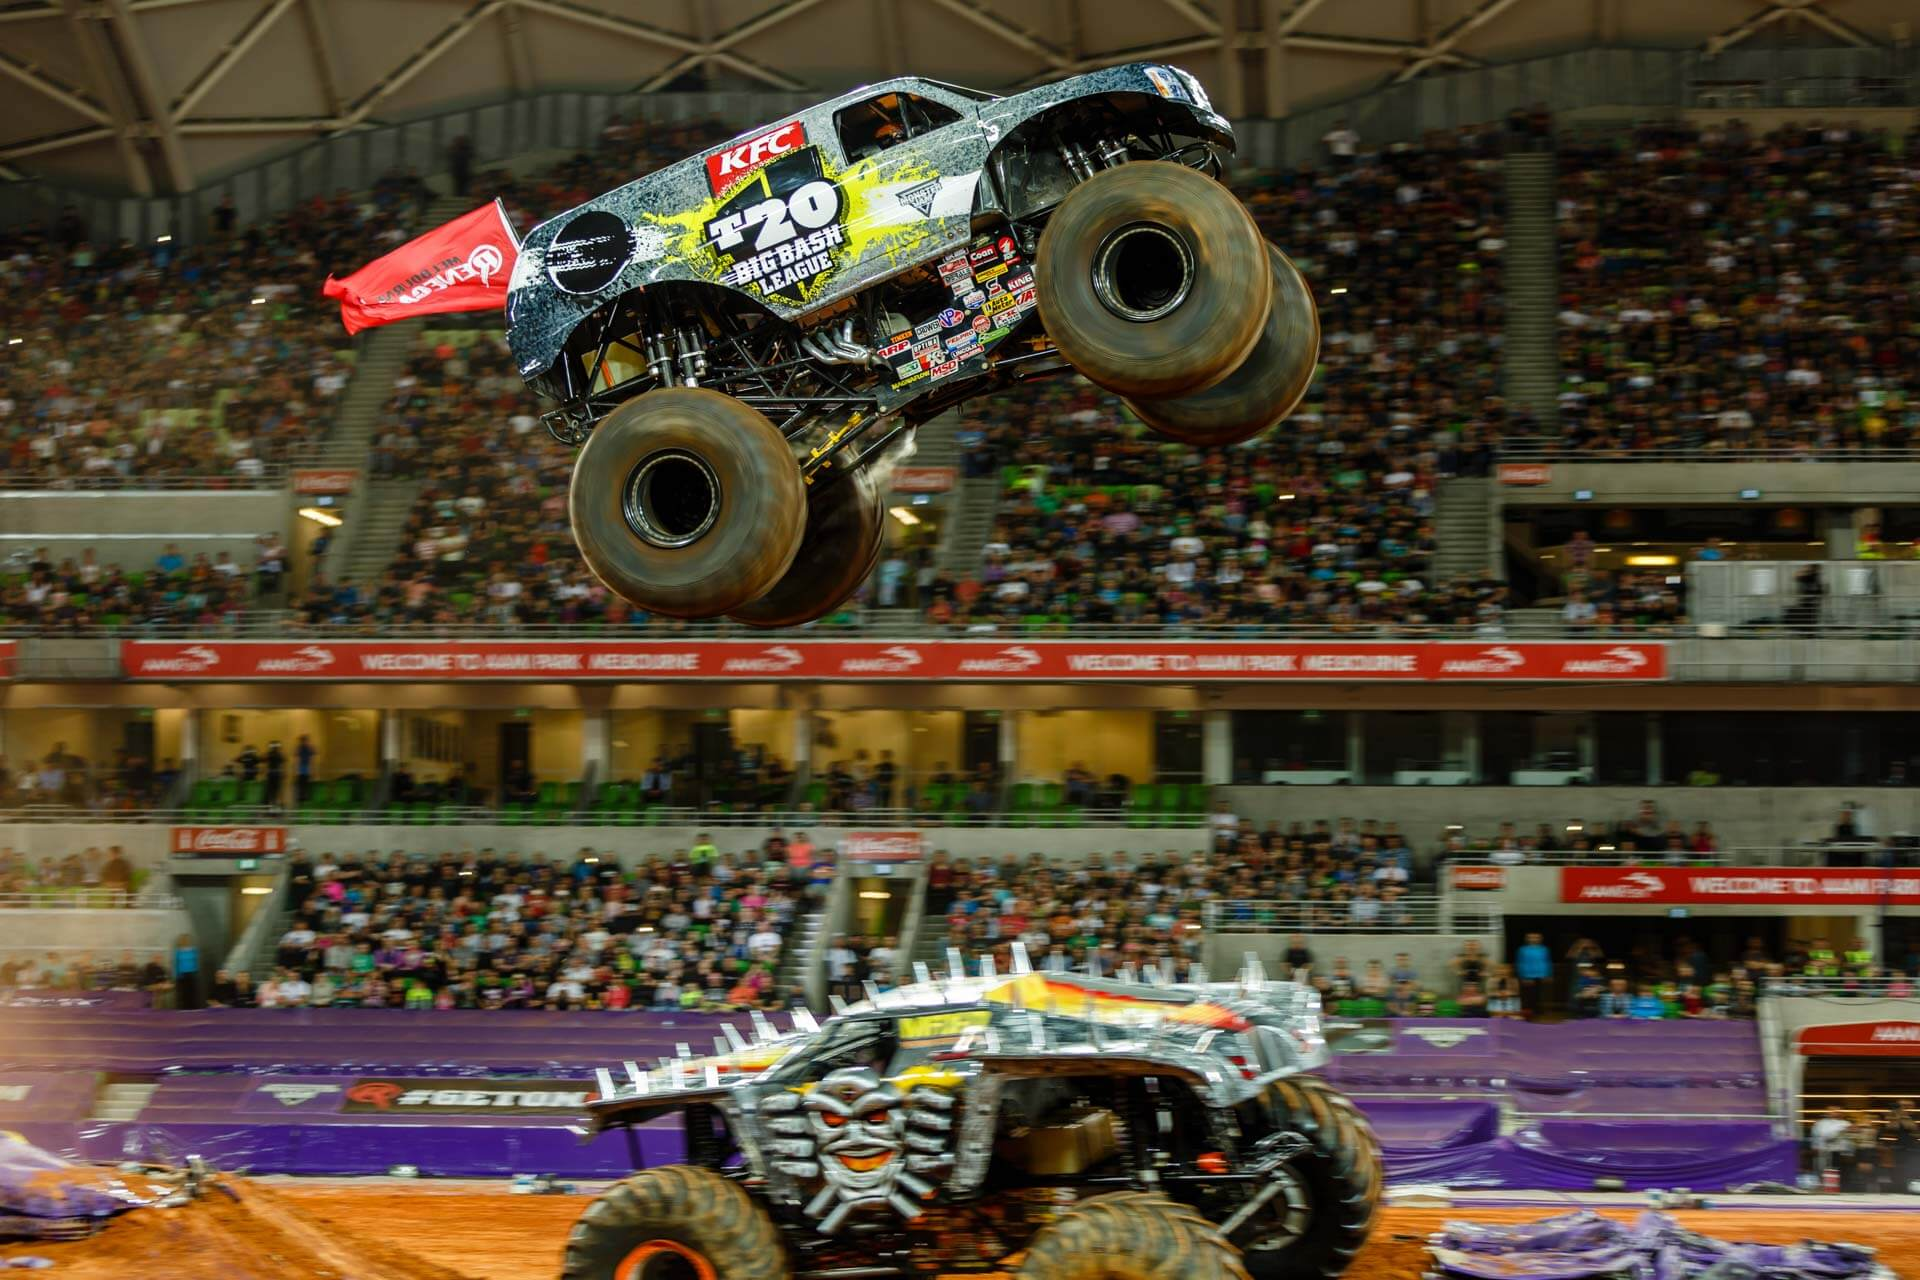 Monster Jam monster truck flying through the air after a big jump jumping over max-d monster truck at ammi park stadium melbourne